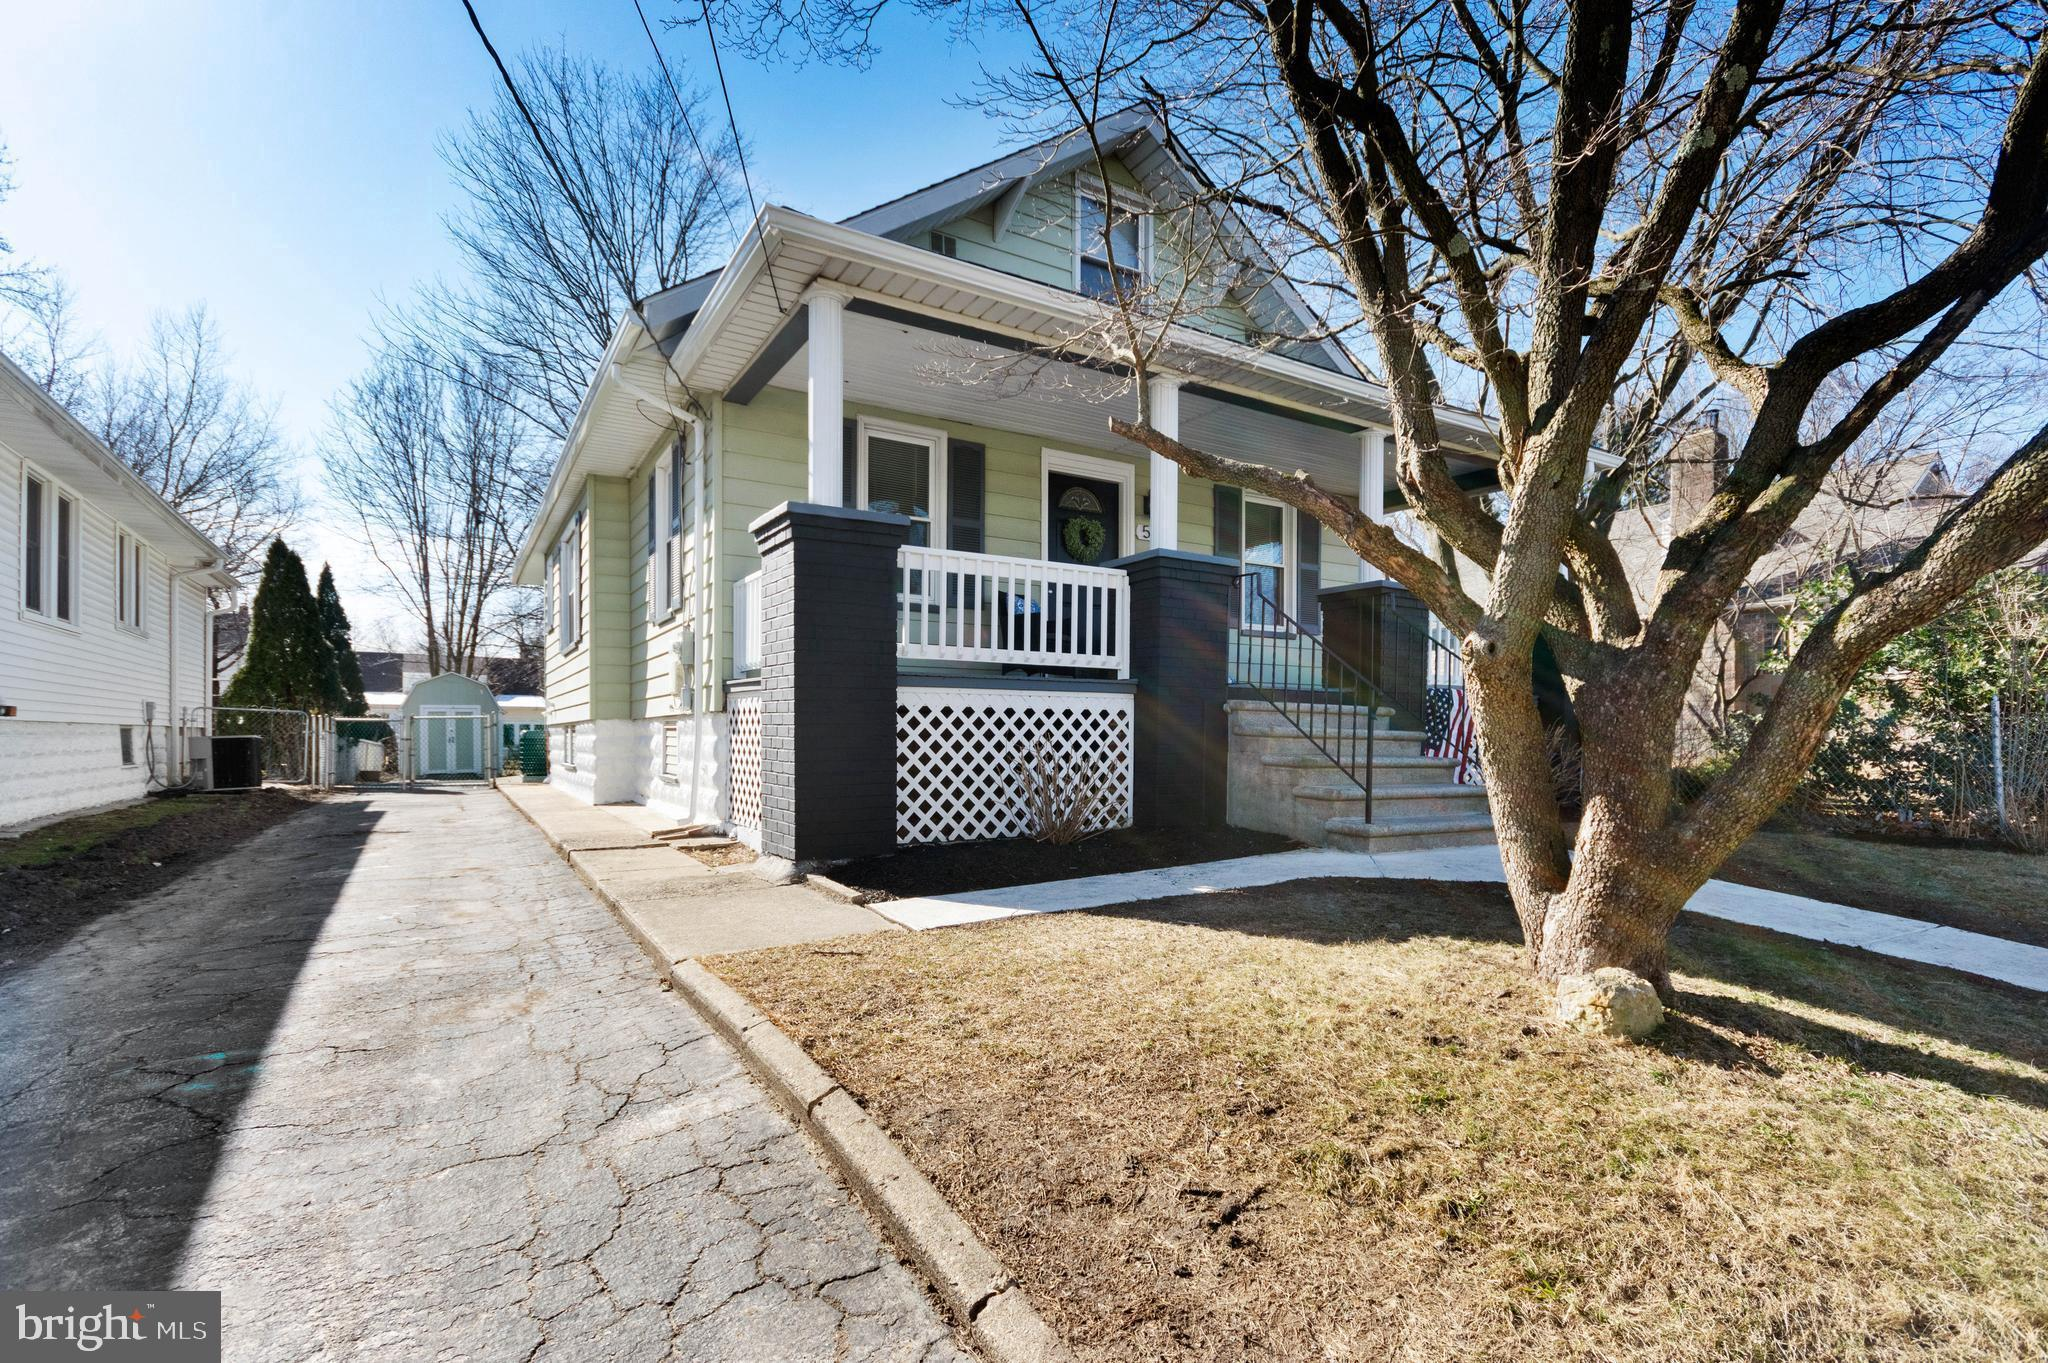 558 WALNUT STREET, AUDUBON, NJ 08106